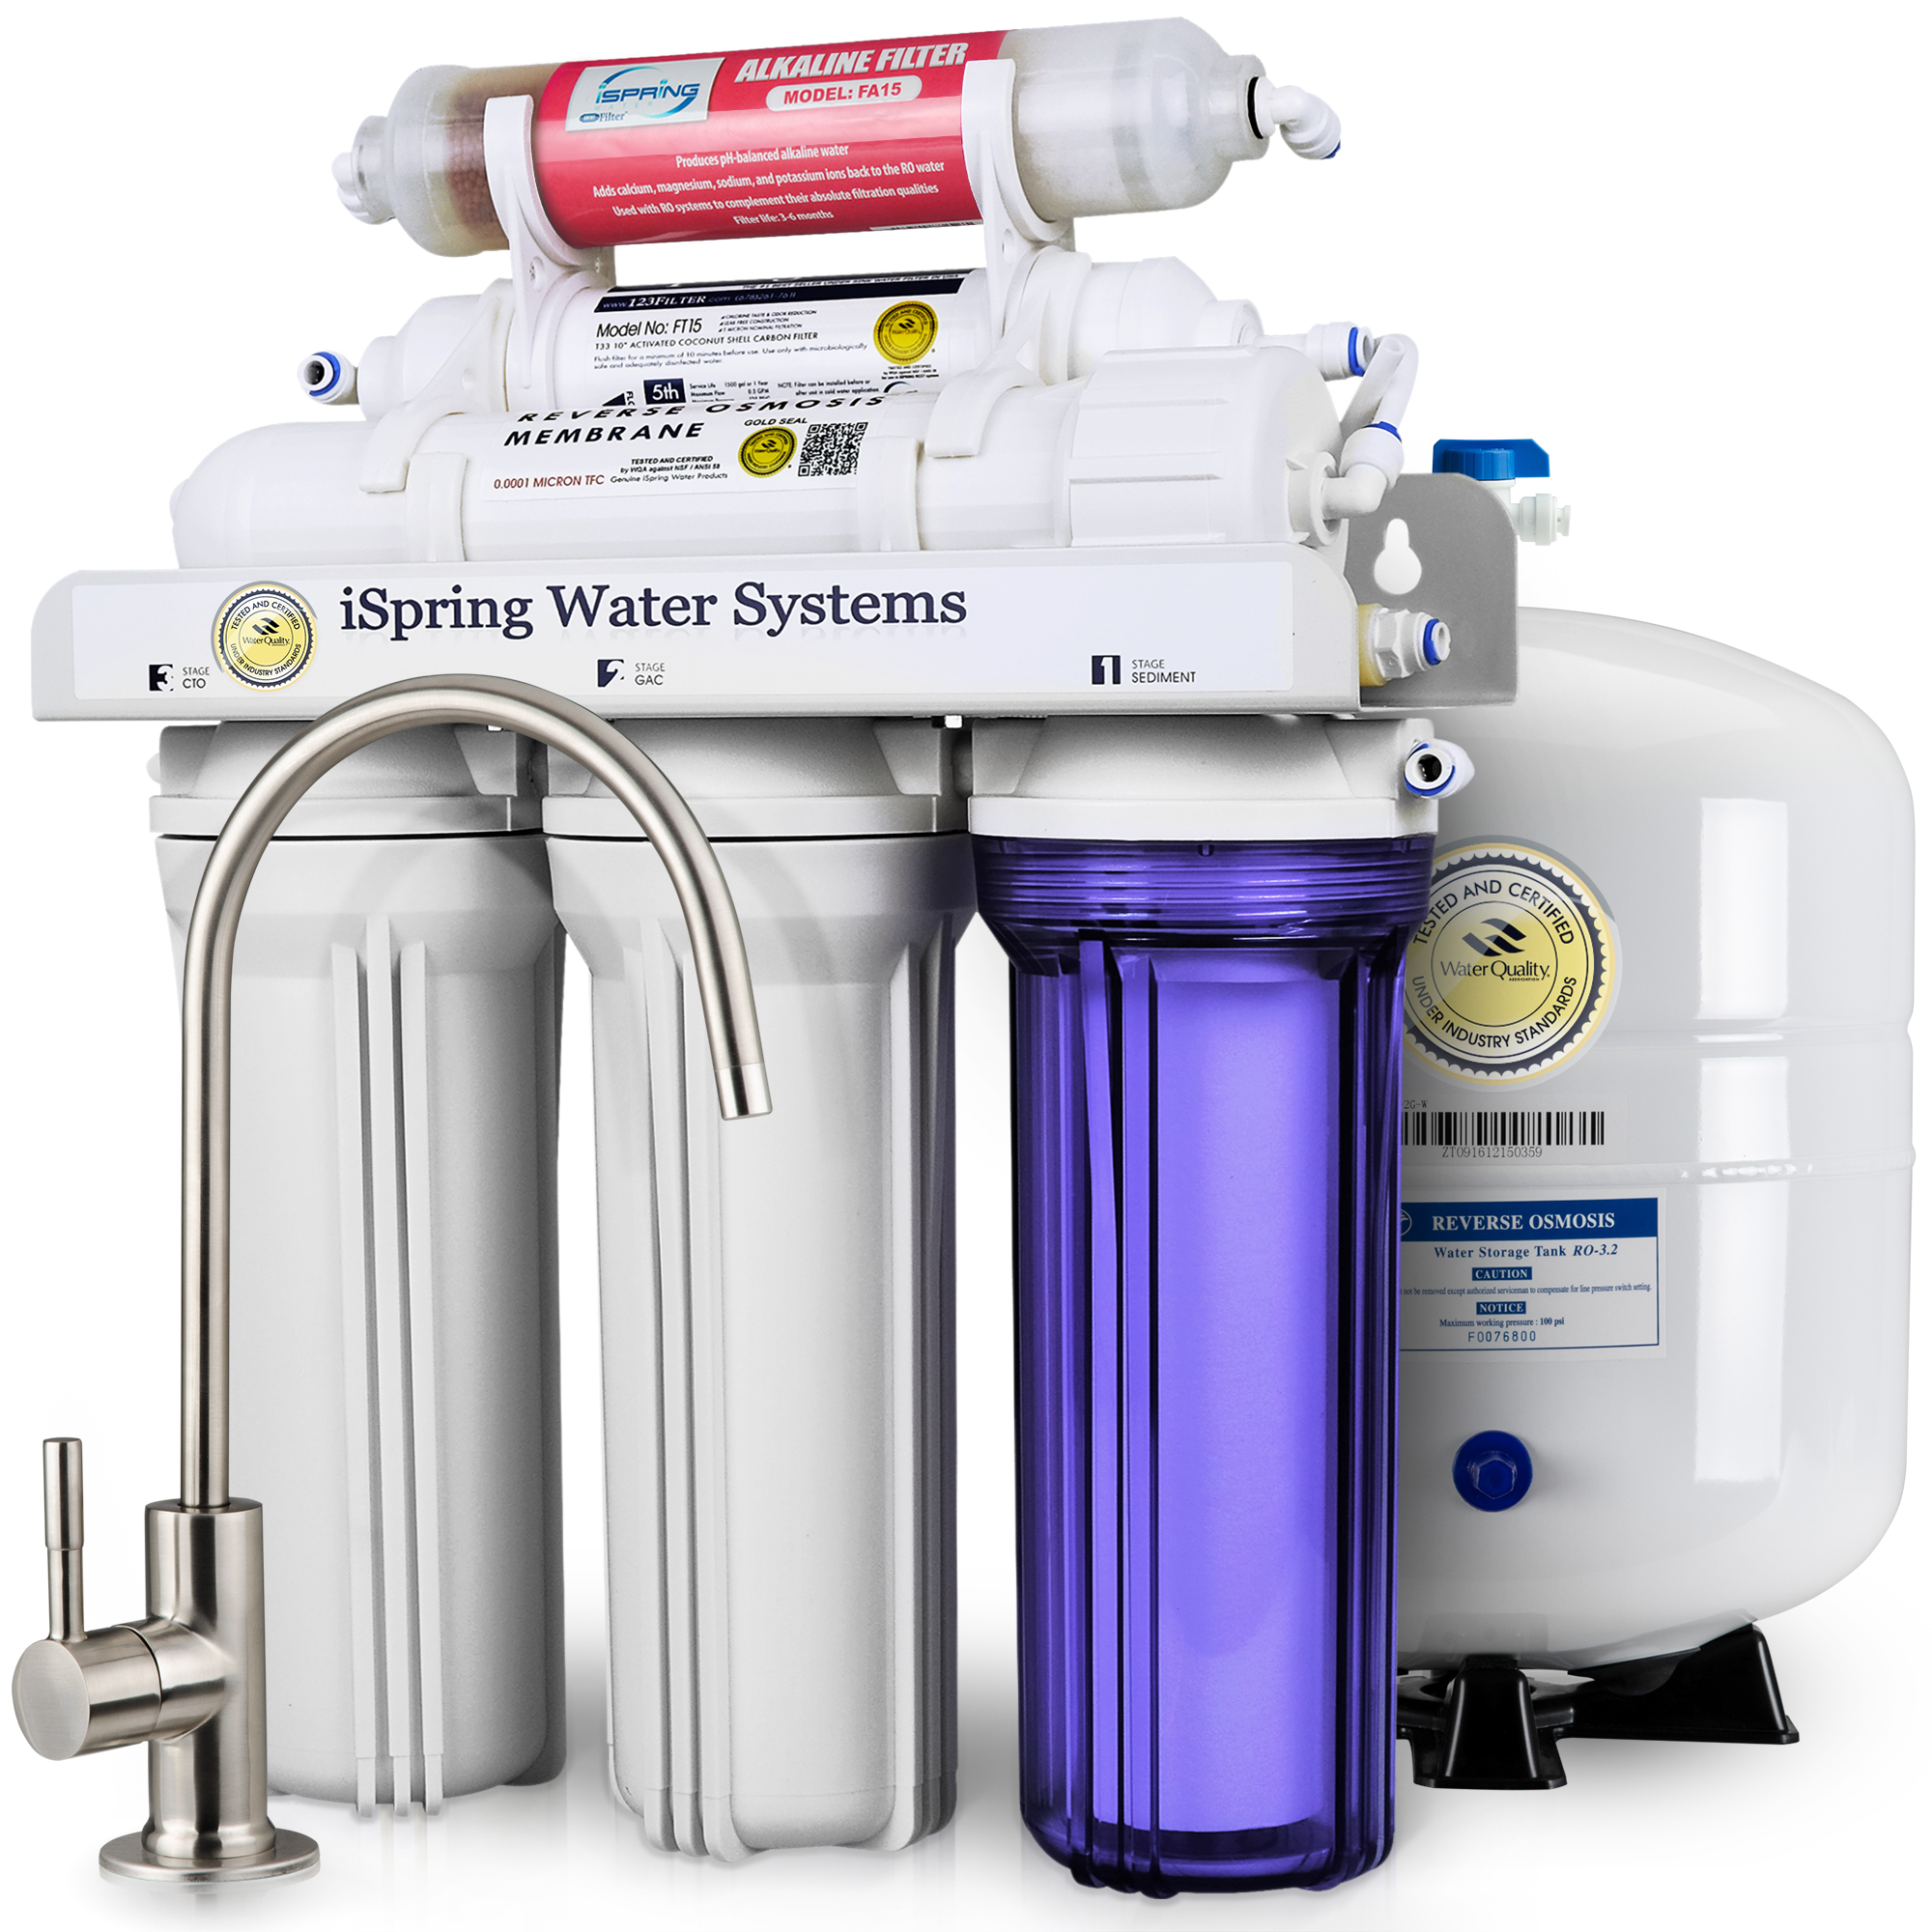 iSpring Reverse Osmosis Water Filter System w/ Alkaline Mineral Stage - 75GPD 6-stage RCC7AK with Designer Faucet